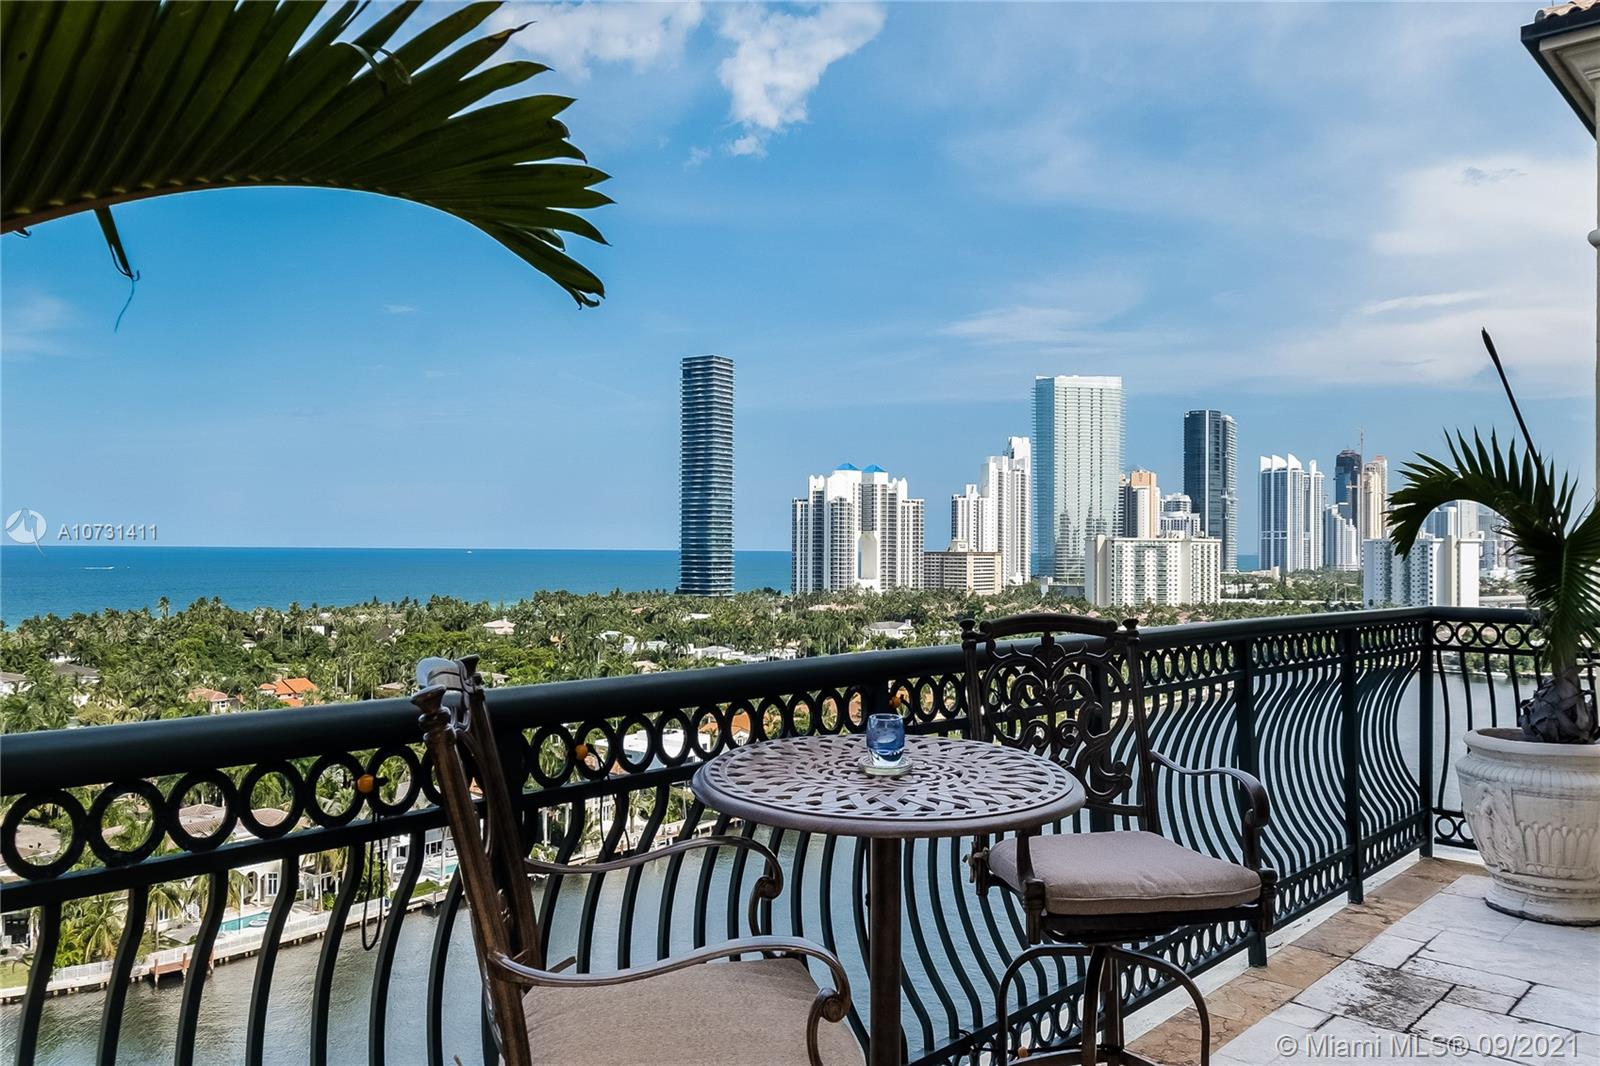 AN OPPORTUNITY OF A LIFETIME WITH AN IMPROVED PRICE! IMAGINE LIVING IN A HOME THAT OFFERS A FULL SERVICE, WORRY FREE LIFESTYLE WITH 9,600SF OF INDOOR LIVING SPACE SURROUNDED BY WALLS OF GLASS WITH THE MOST DESIRED VIEWS TO THE INTRACOASTAL AND OCEAN LEADING TO 2500SF TERRACES. THIS 2-STORY PH, WITH PRIVATE ELEVATOR LANDING, TOPS A 14TH STORY BOUTIQUE CONDO TUCKED IN THE LUXURIOUS COMPLEX OF PORTO VITA.  SMART HOME! OFFERS 5 BED/7.5 BATH,OFFICE,FAMILY,LIVING AND FORMAL DINING ROOM,BREAKFAST, GOURMET KITCHEN & SERVICE HQ. 2 MASTER BEDROOMS, 1 IN EACH FLOOR. CULTIVATE THE IDEAL ENVIRONMENT FOR RELAXATION, HOSTING PARTIES OR CHILDREN'S HOMEWORK AS YOU SELECT THE PERFECT AMBIANCE FOR YOUR ELECTRIC SHEER SHADES, SOUND SYSTEM AND LIGHTING. SAFE PERSONAL TOURS AVAILABLE. A TRUE MANSION IN THE SKY!